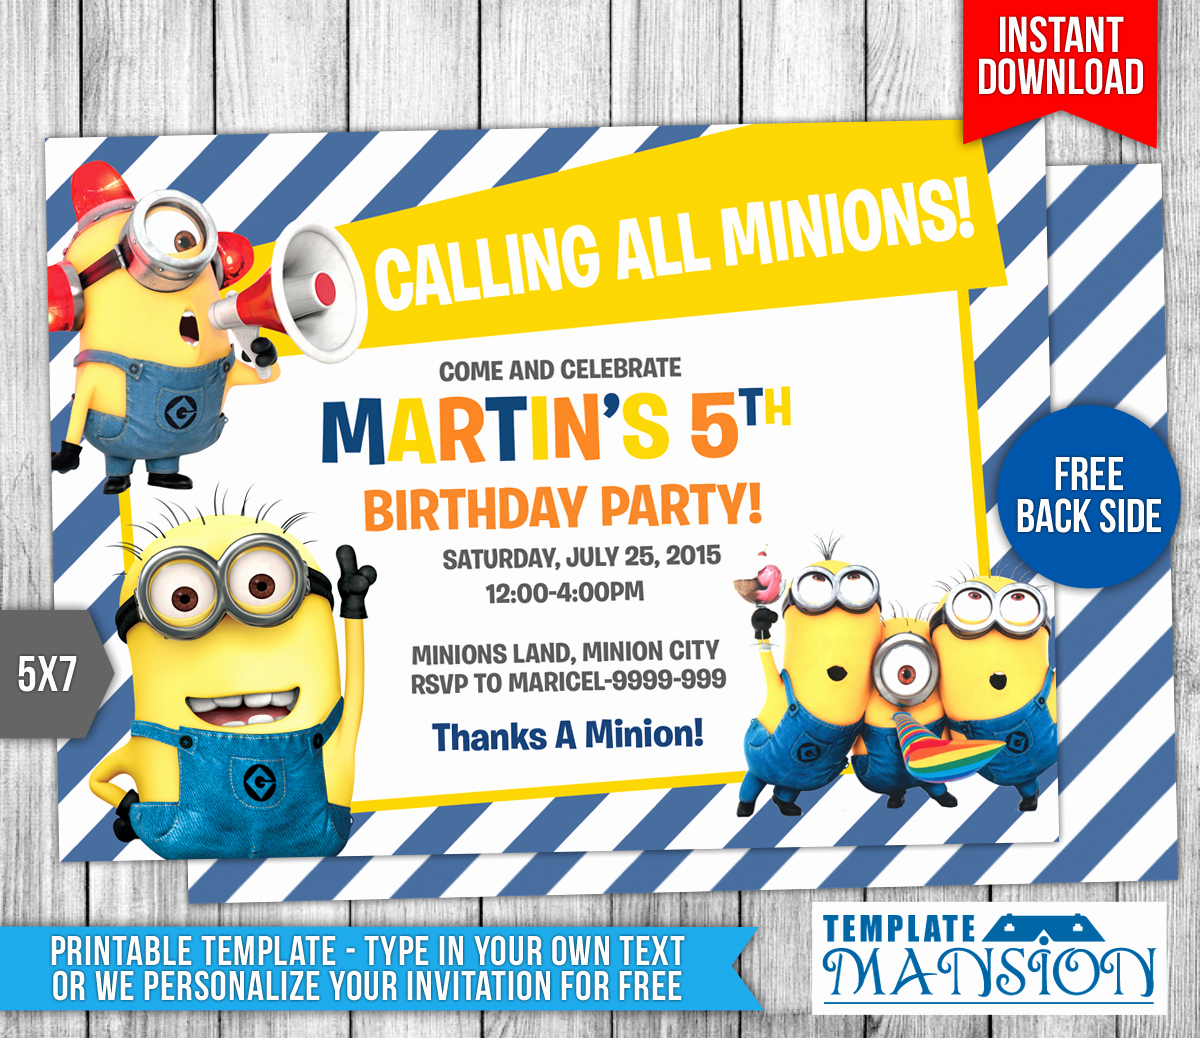 Free Minion Invitation Template Best Of Minions Birthday Invitation 7 by Templatemansion On